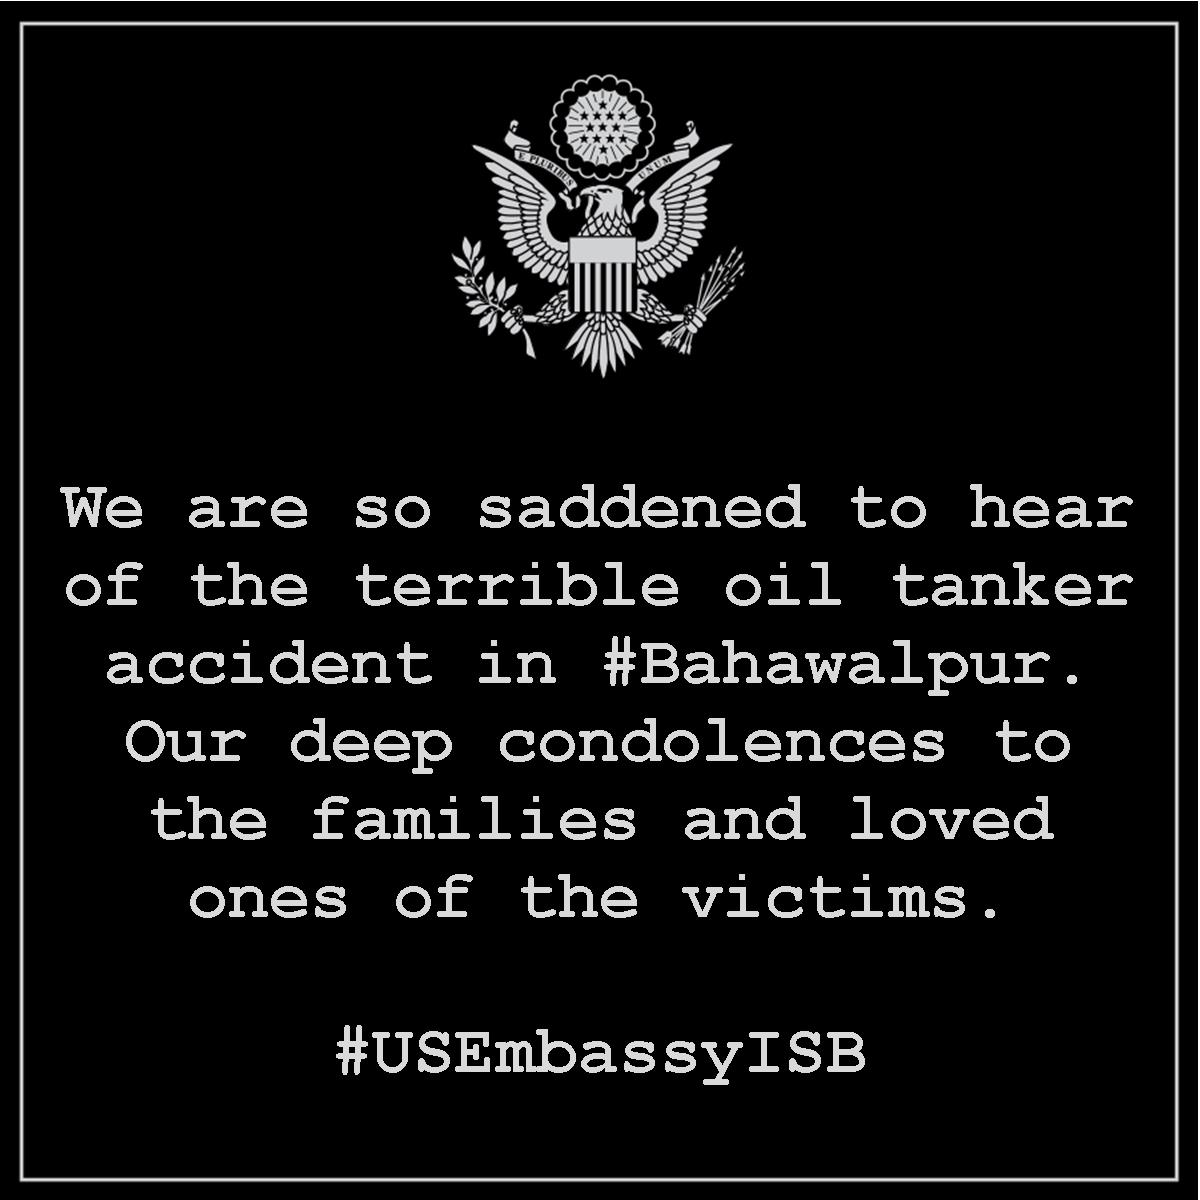 Our deep condolences to the families and loved ones of the victims. #B...